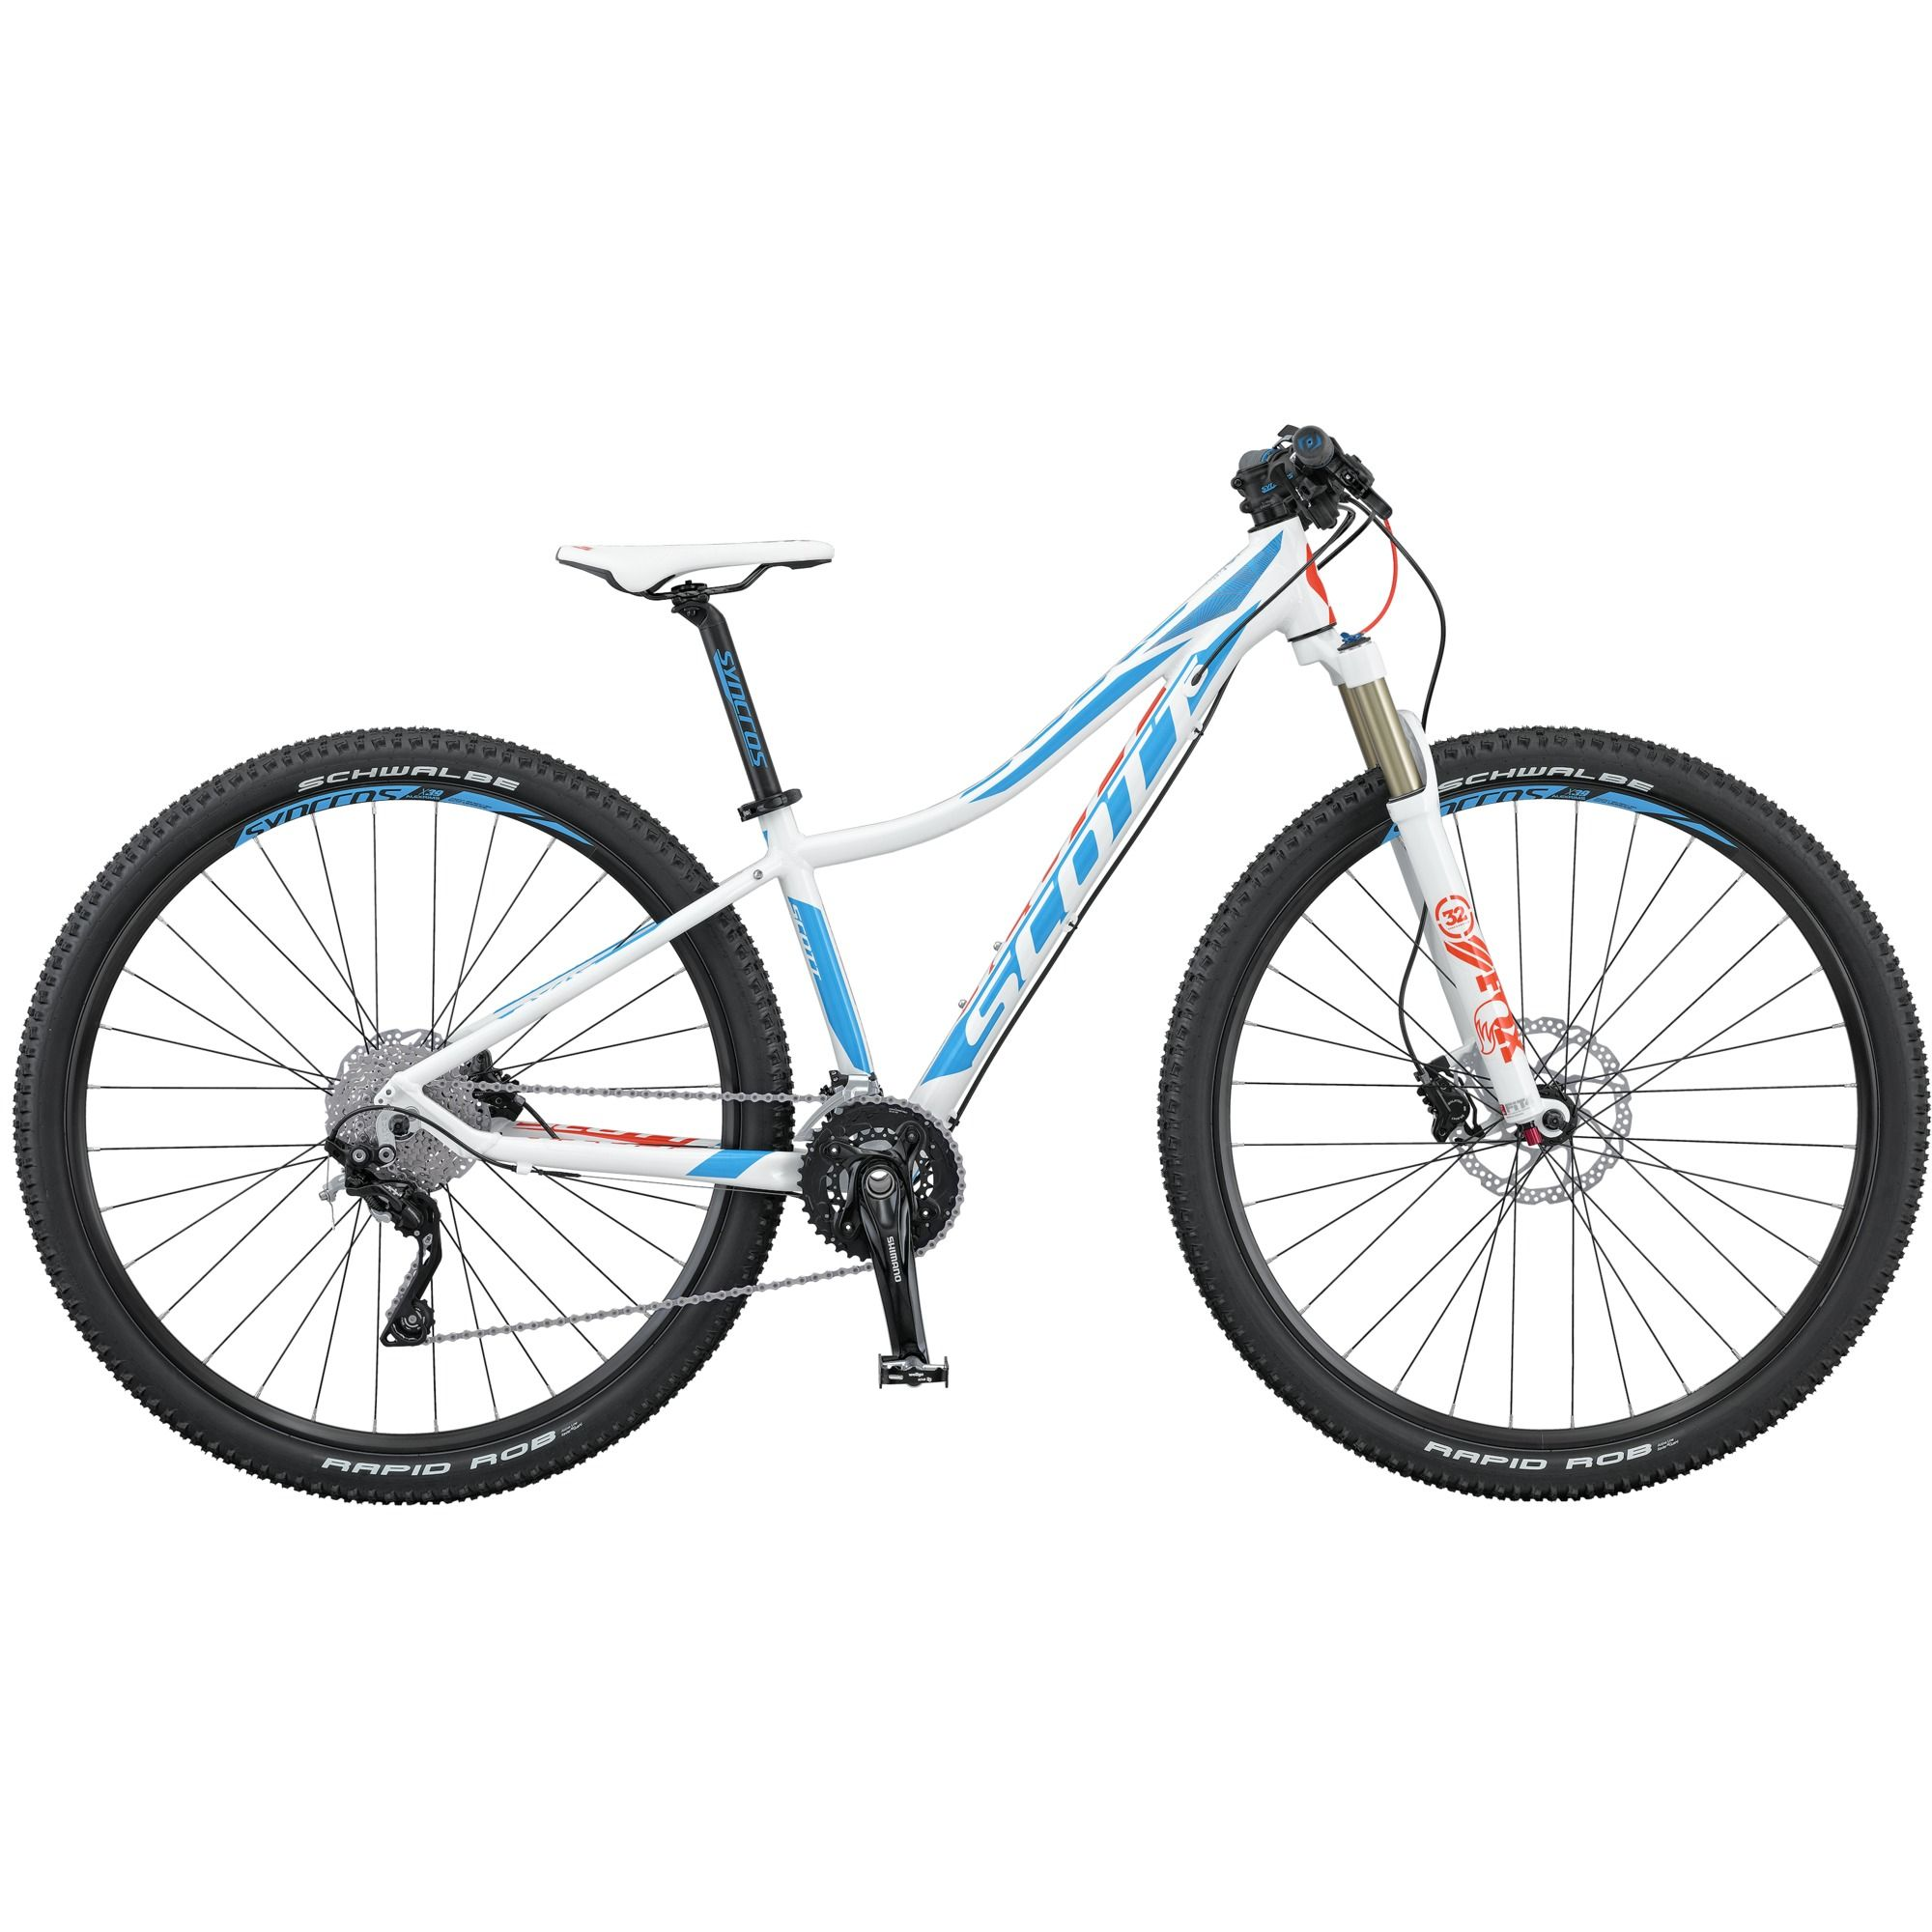 The SCOTT Contessa Scale 900 features a superlight Alloy Frame with ...